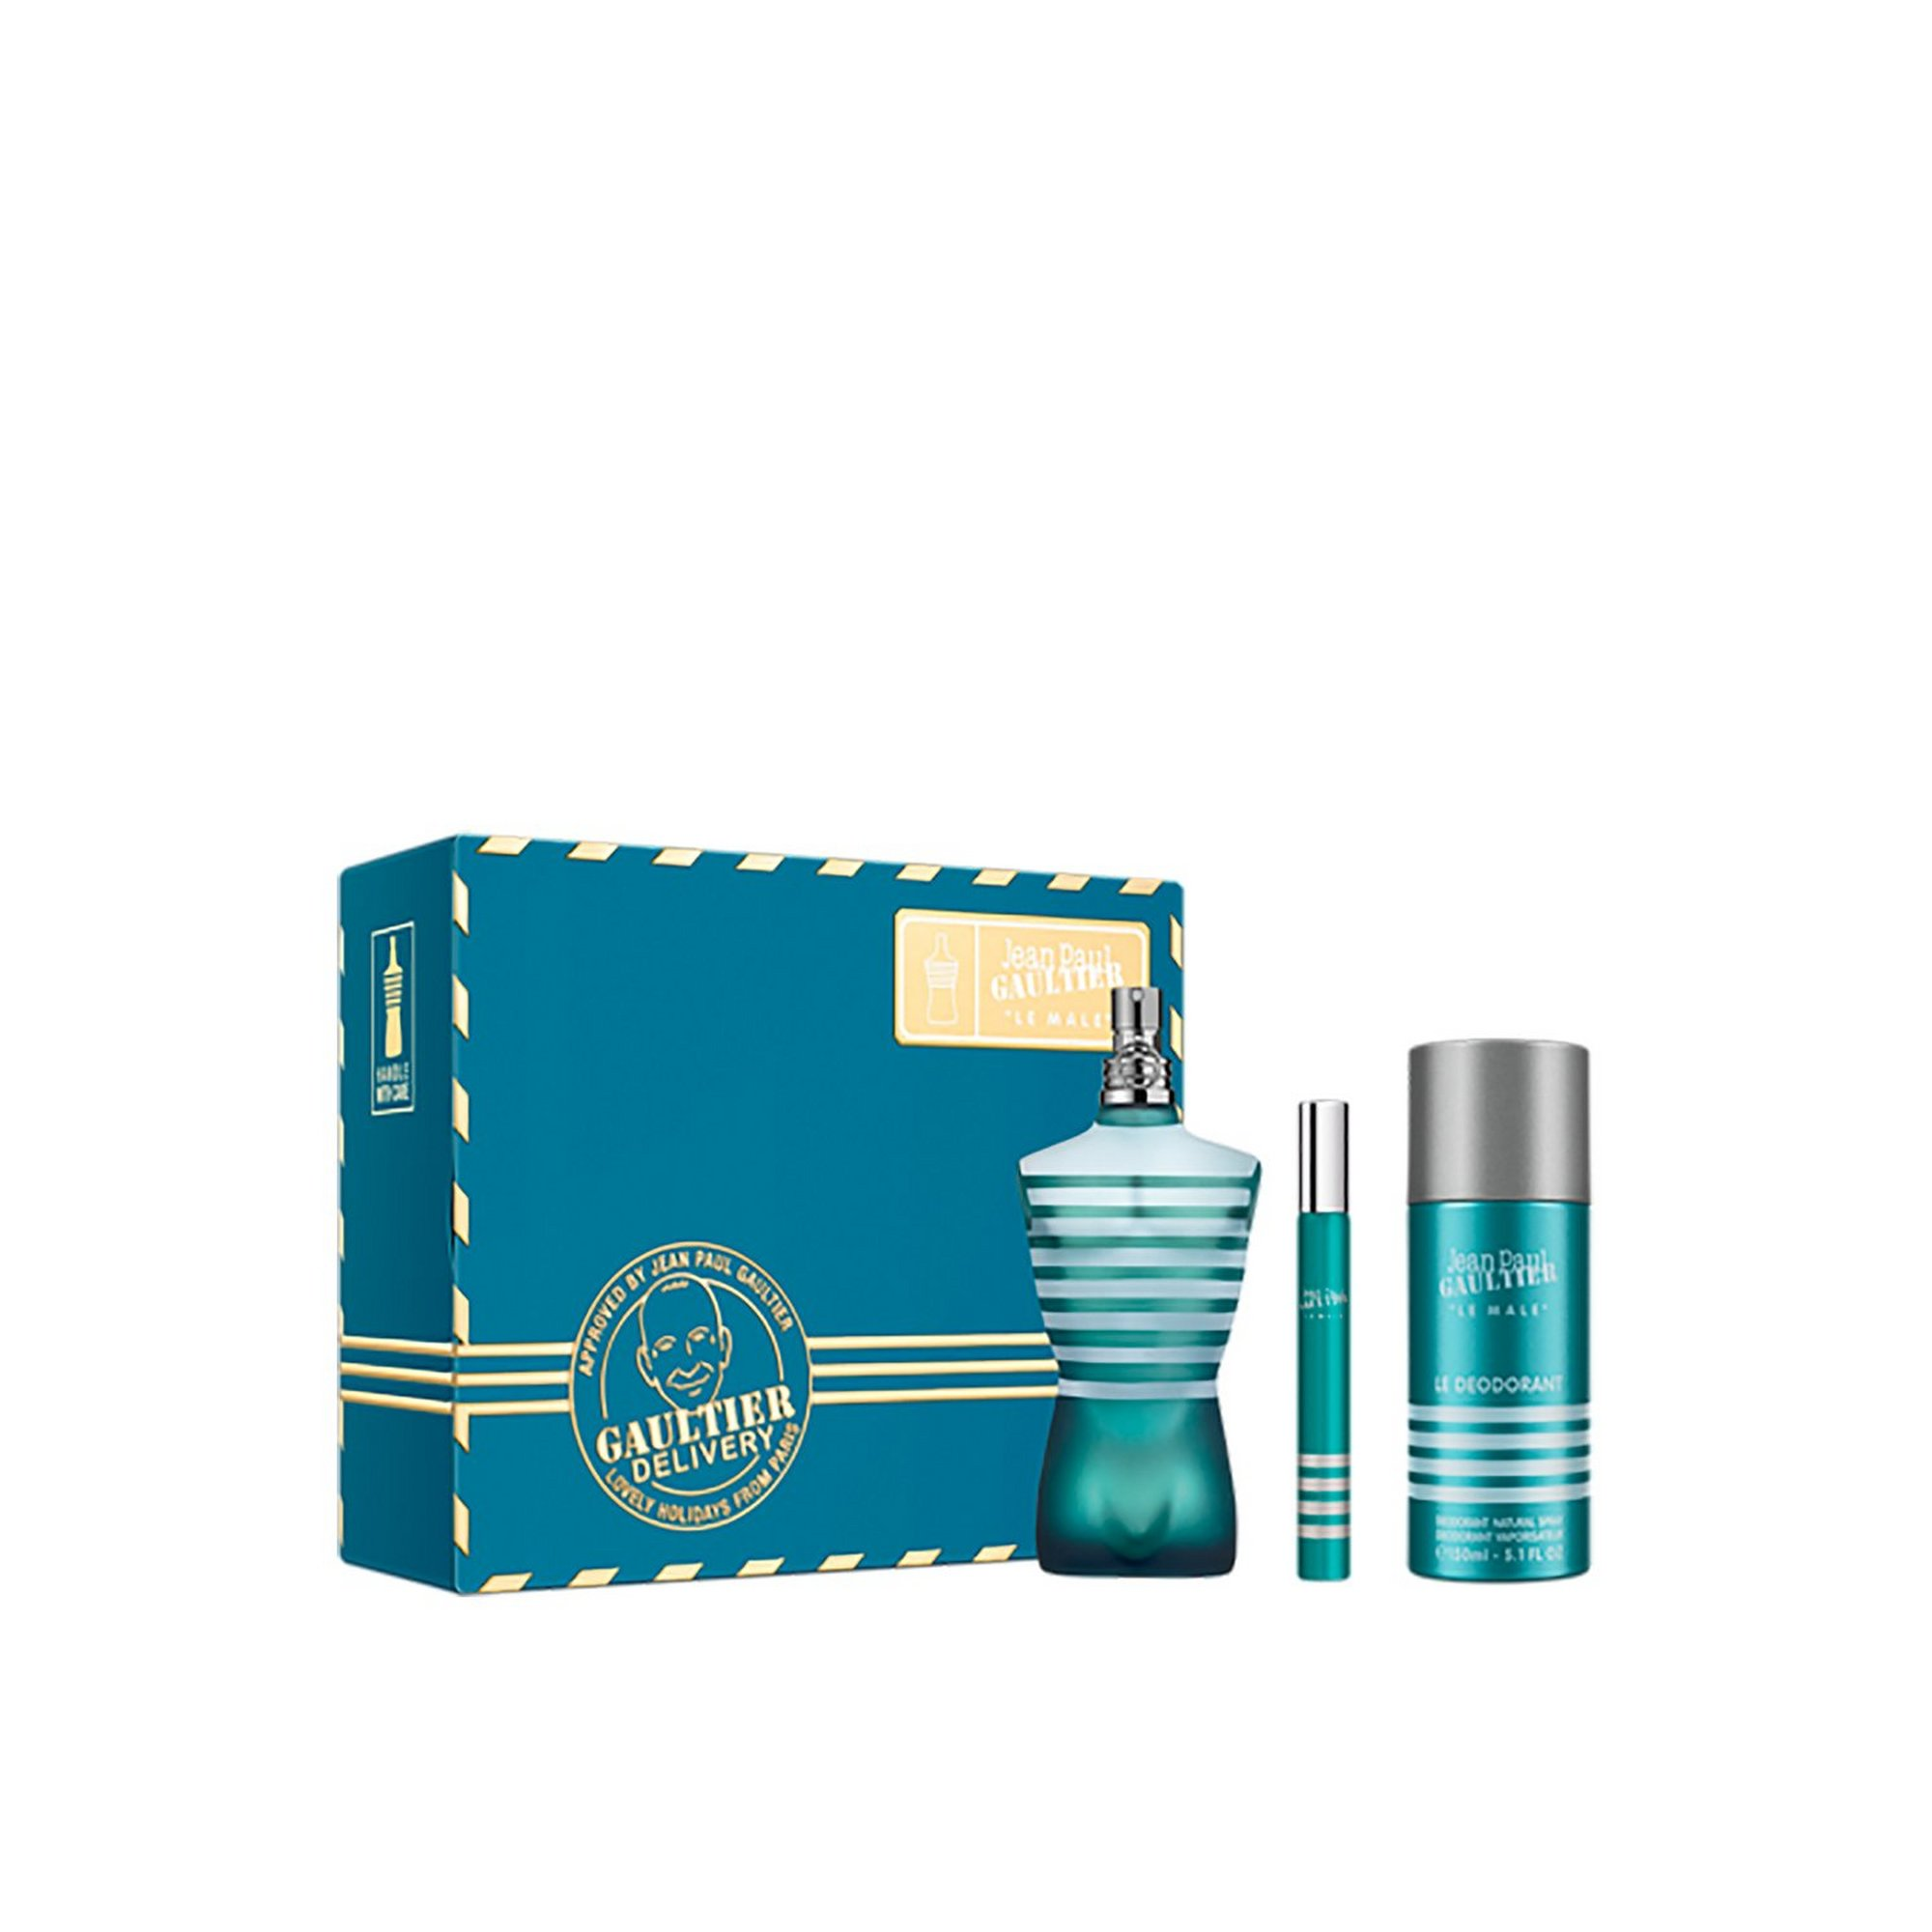 Image of Jean Paul Gaultier Le Male 125ml EDT Gift Set